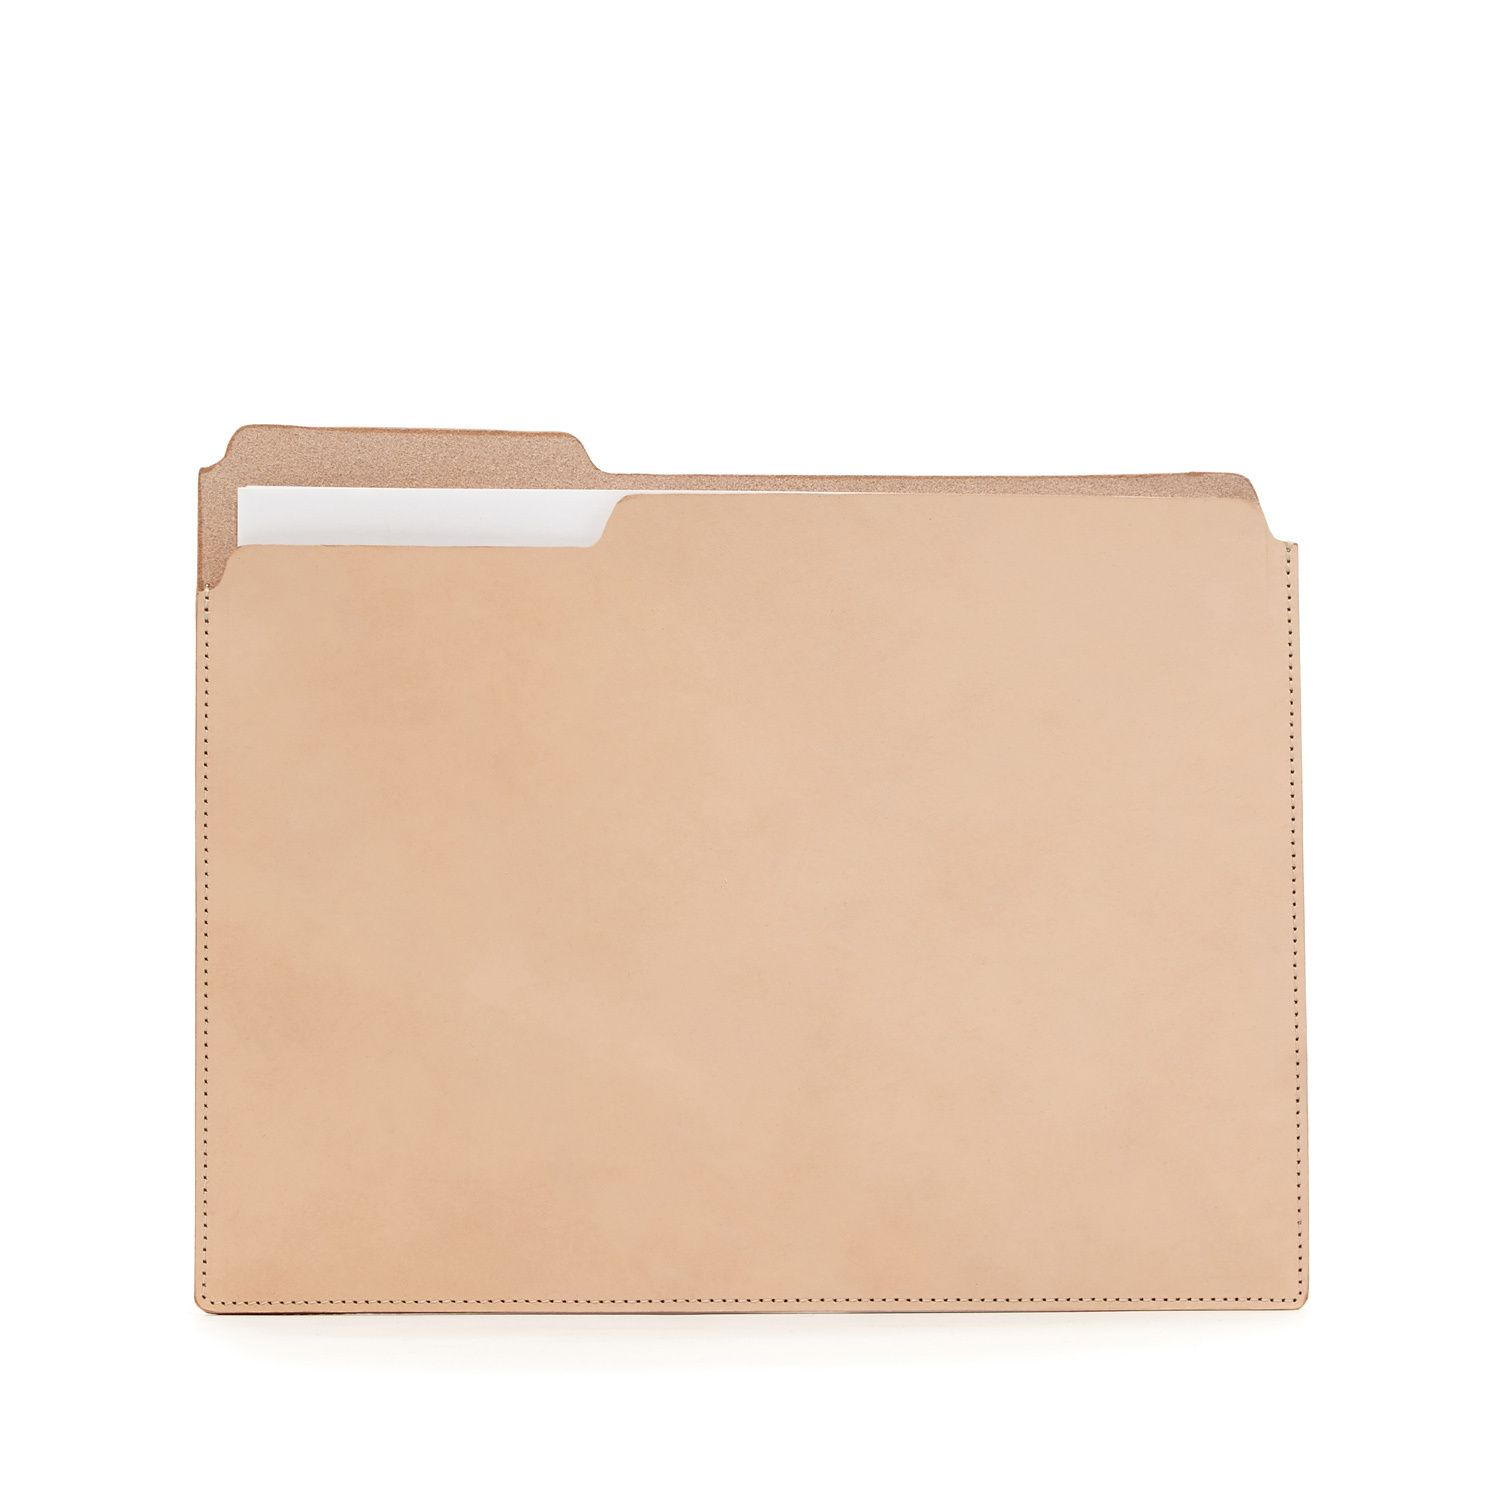 The Classic Manila File Folder Reinvented In Smooth Sturdy Leather Perfect For Transporting Importa Manila Folder Leather Travel Tag Vintage Office Supplies